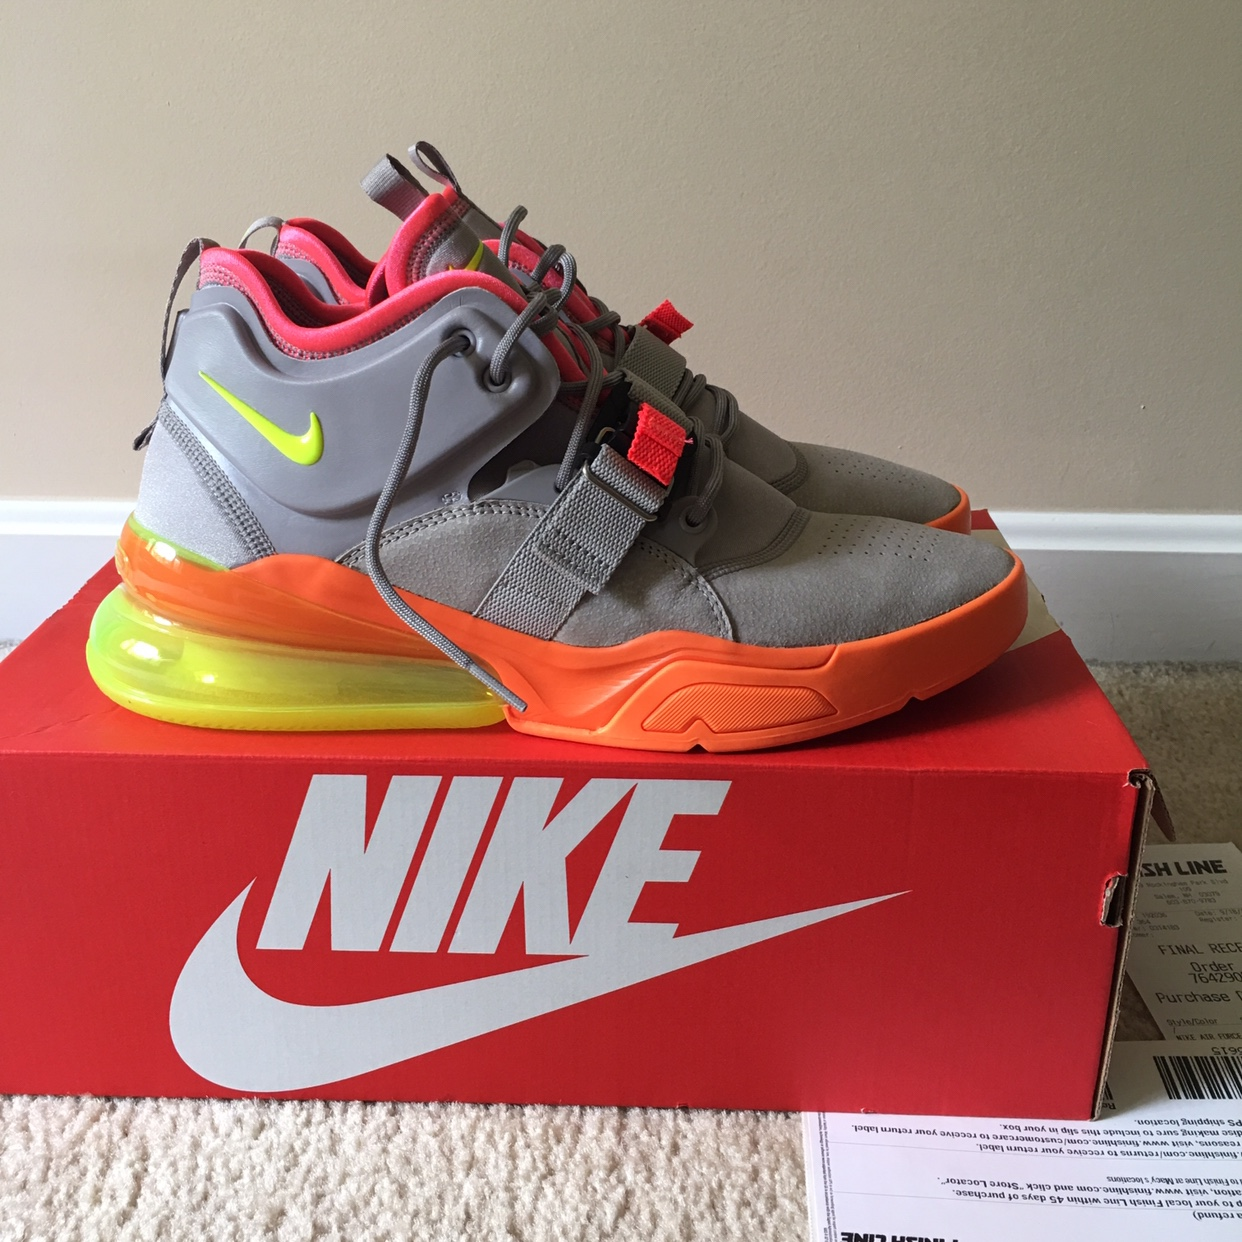 sports shoes 6c5a4 467ab NIKE AIR FORCE 270 SHERBET COLORWAY / Sz 11 ...